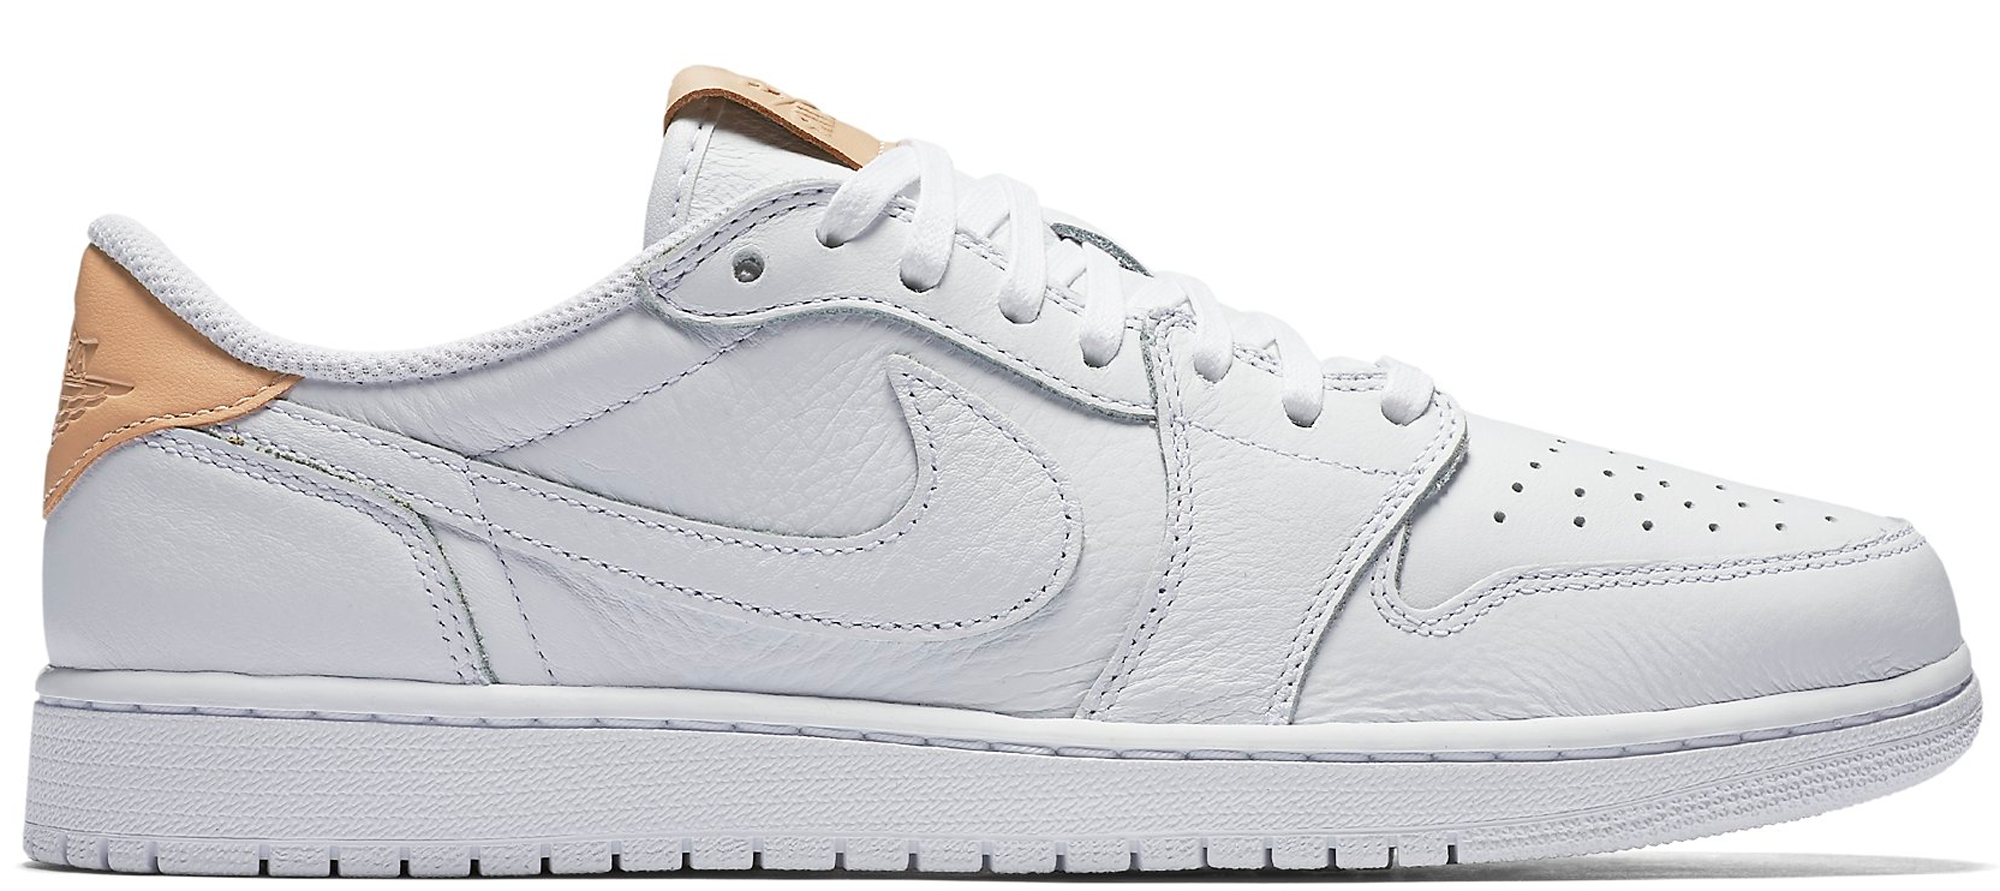 fb4bd4a36c52bf Air Jordan 1 Retro Low OG Premium White Vachetta Tan - StockX News